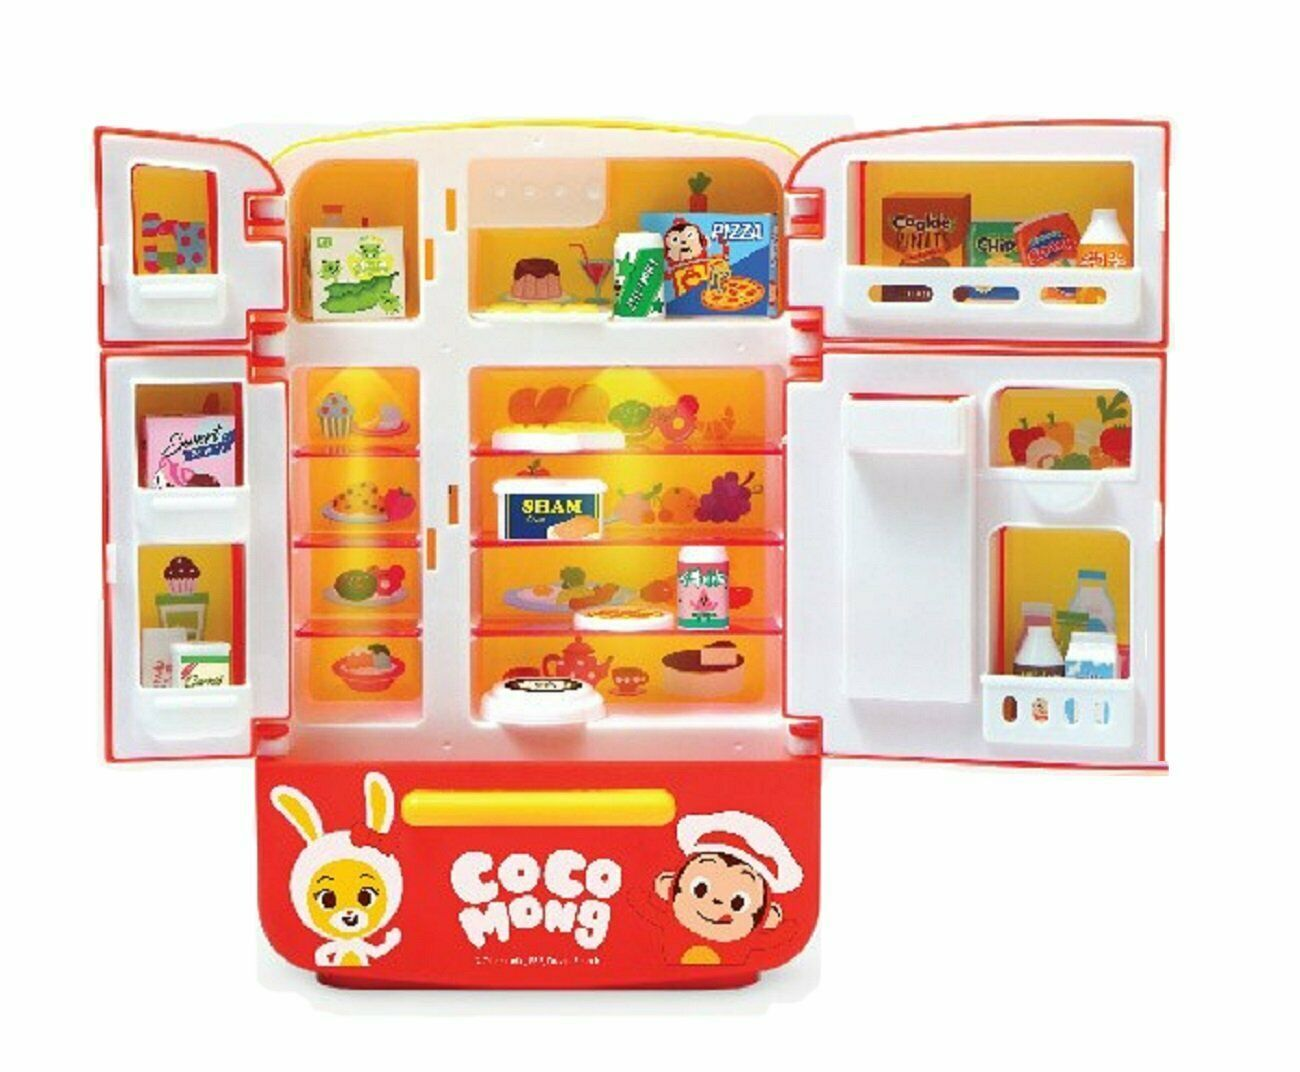 Zeus Toys Coco Mong Melody Light Chef Refrigerator with Drinks Kitchen Roleplay